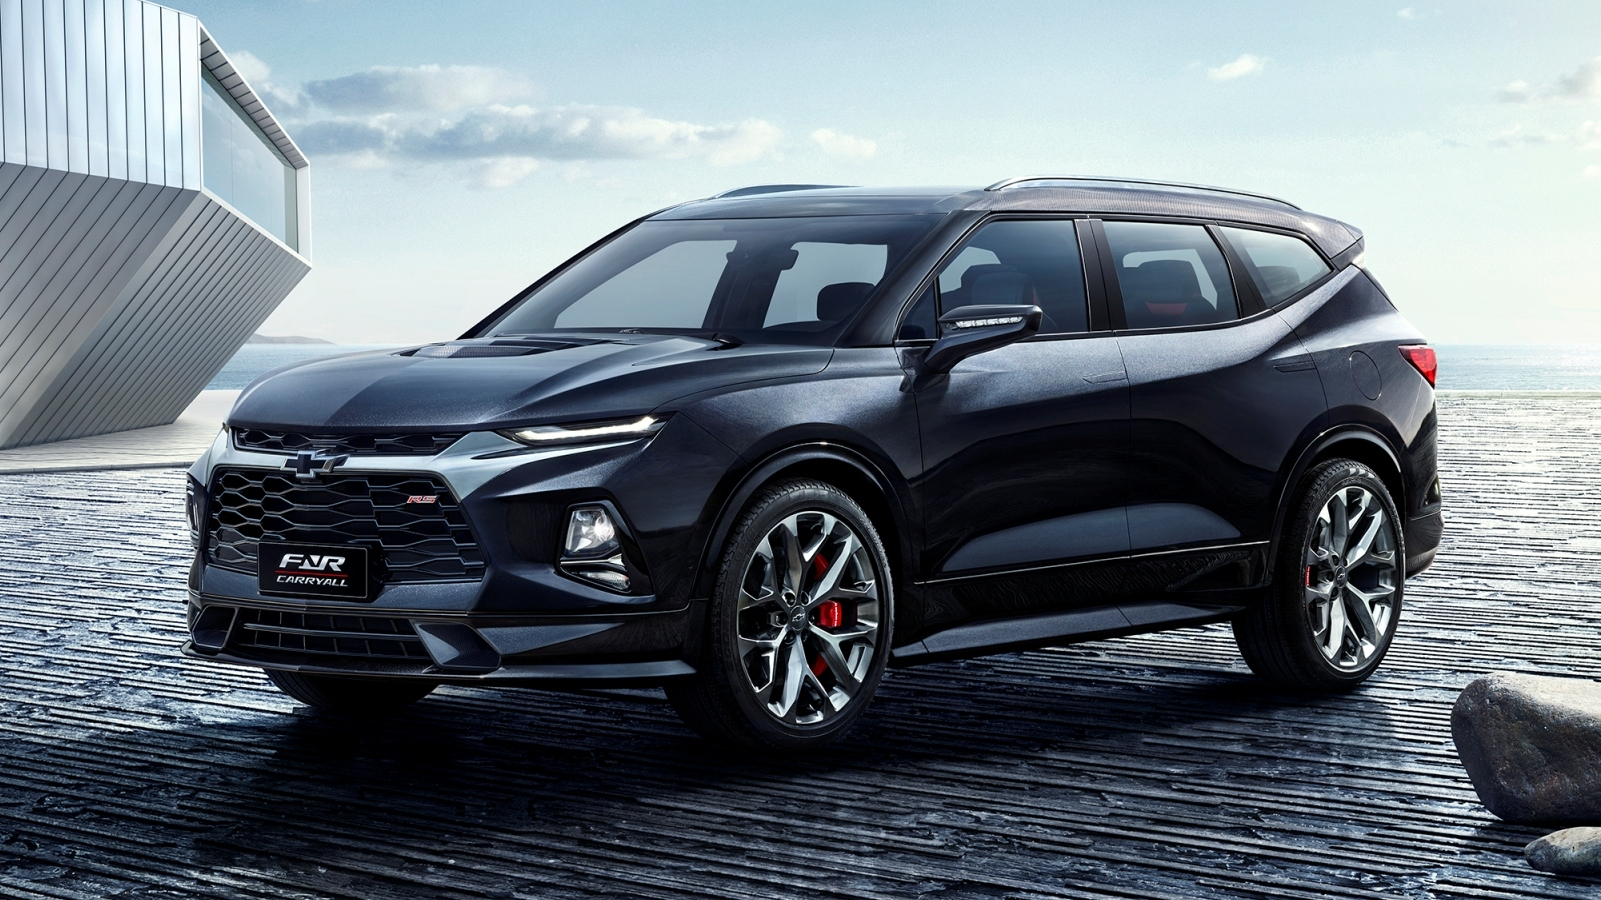 The 2018 Chevy Fnr Carry All Concept Will Come To Life As A Three